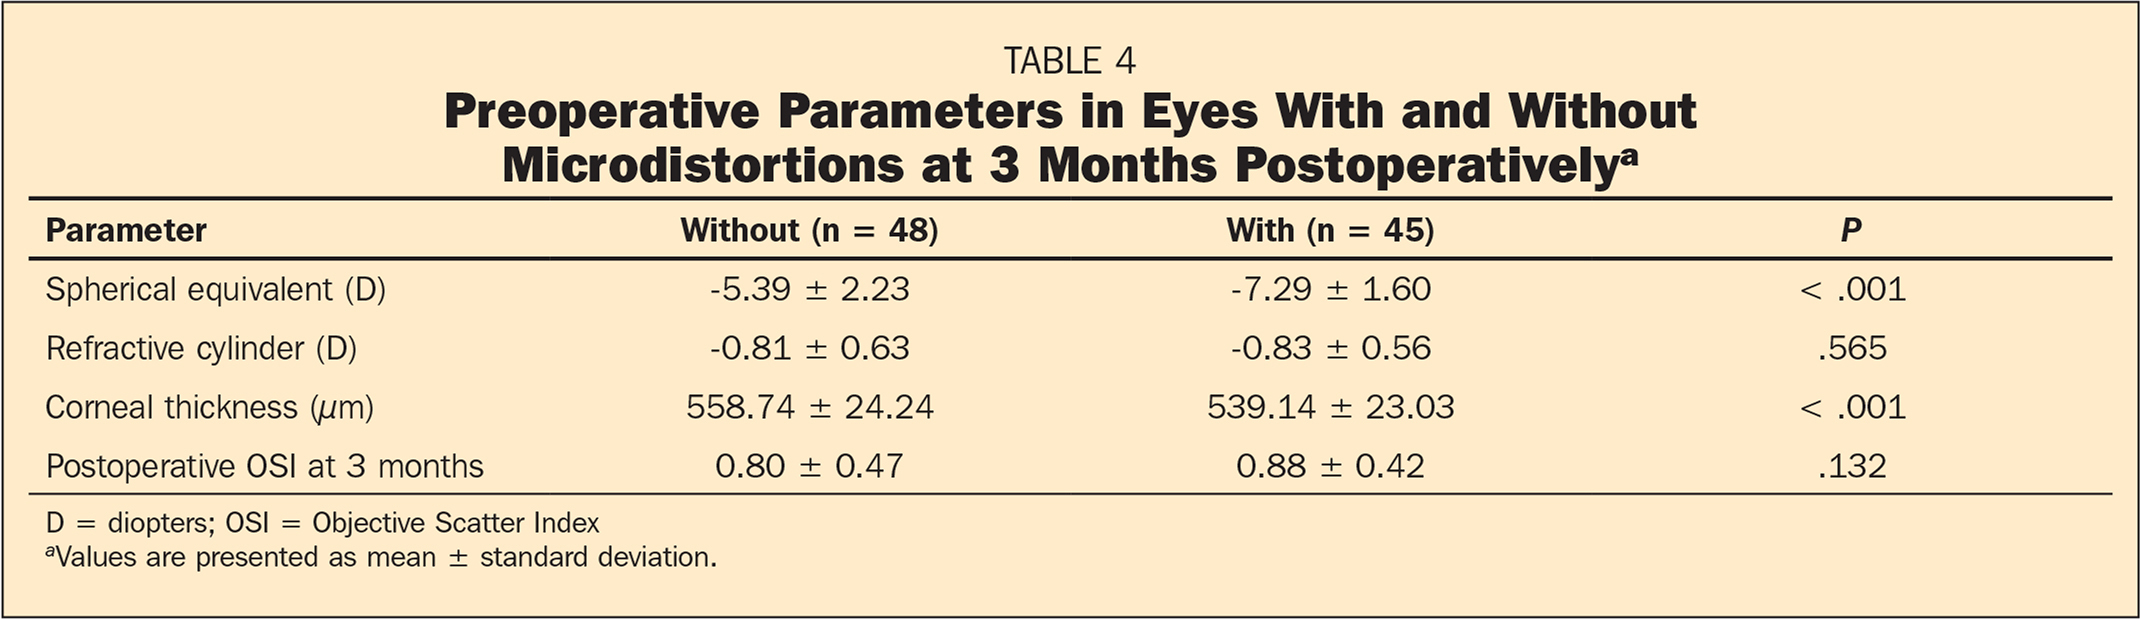 Preoperative Parameters in Eyes With and Without Microdistortions at 3 Months Postoperativelya